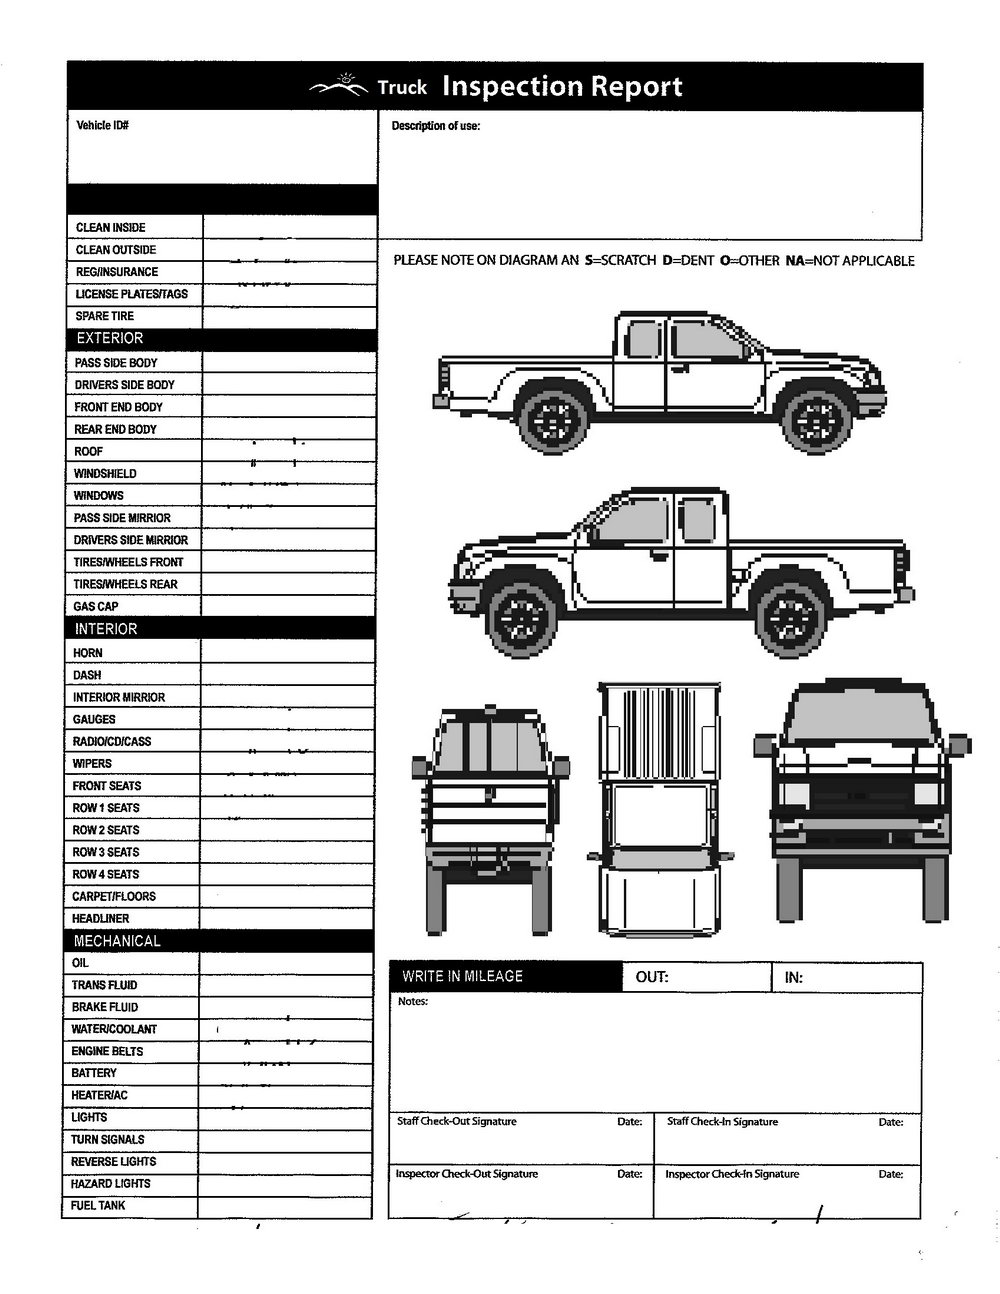 Truck Inspection Checklist Template